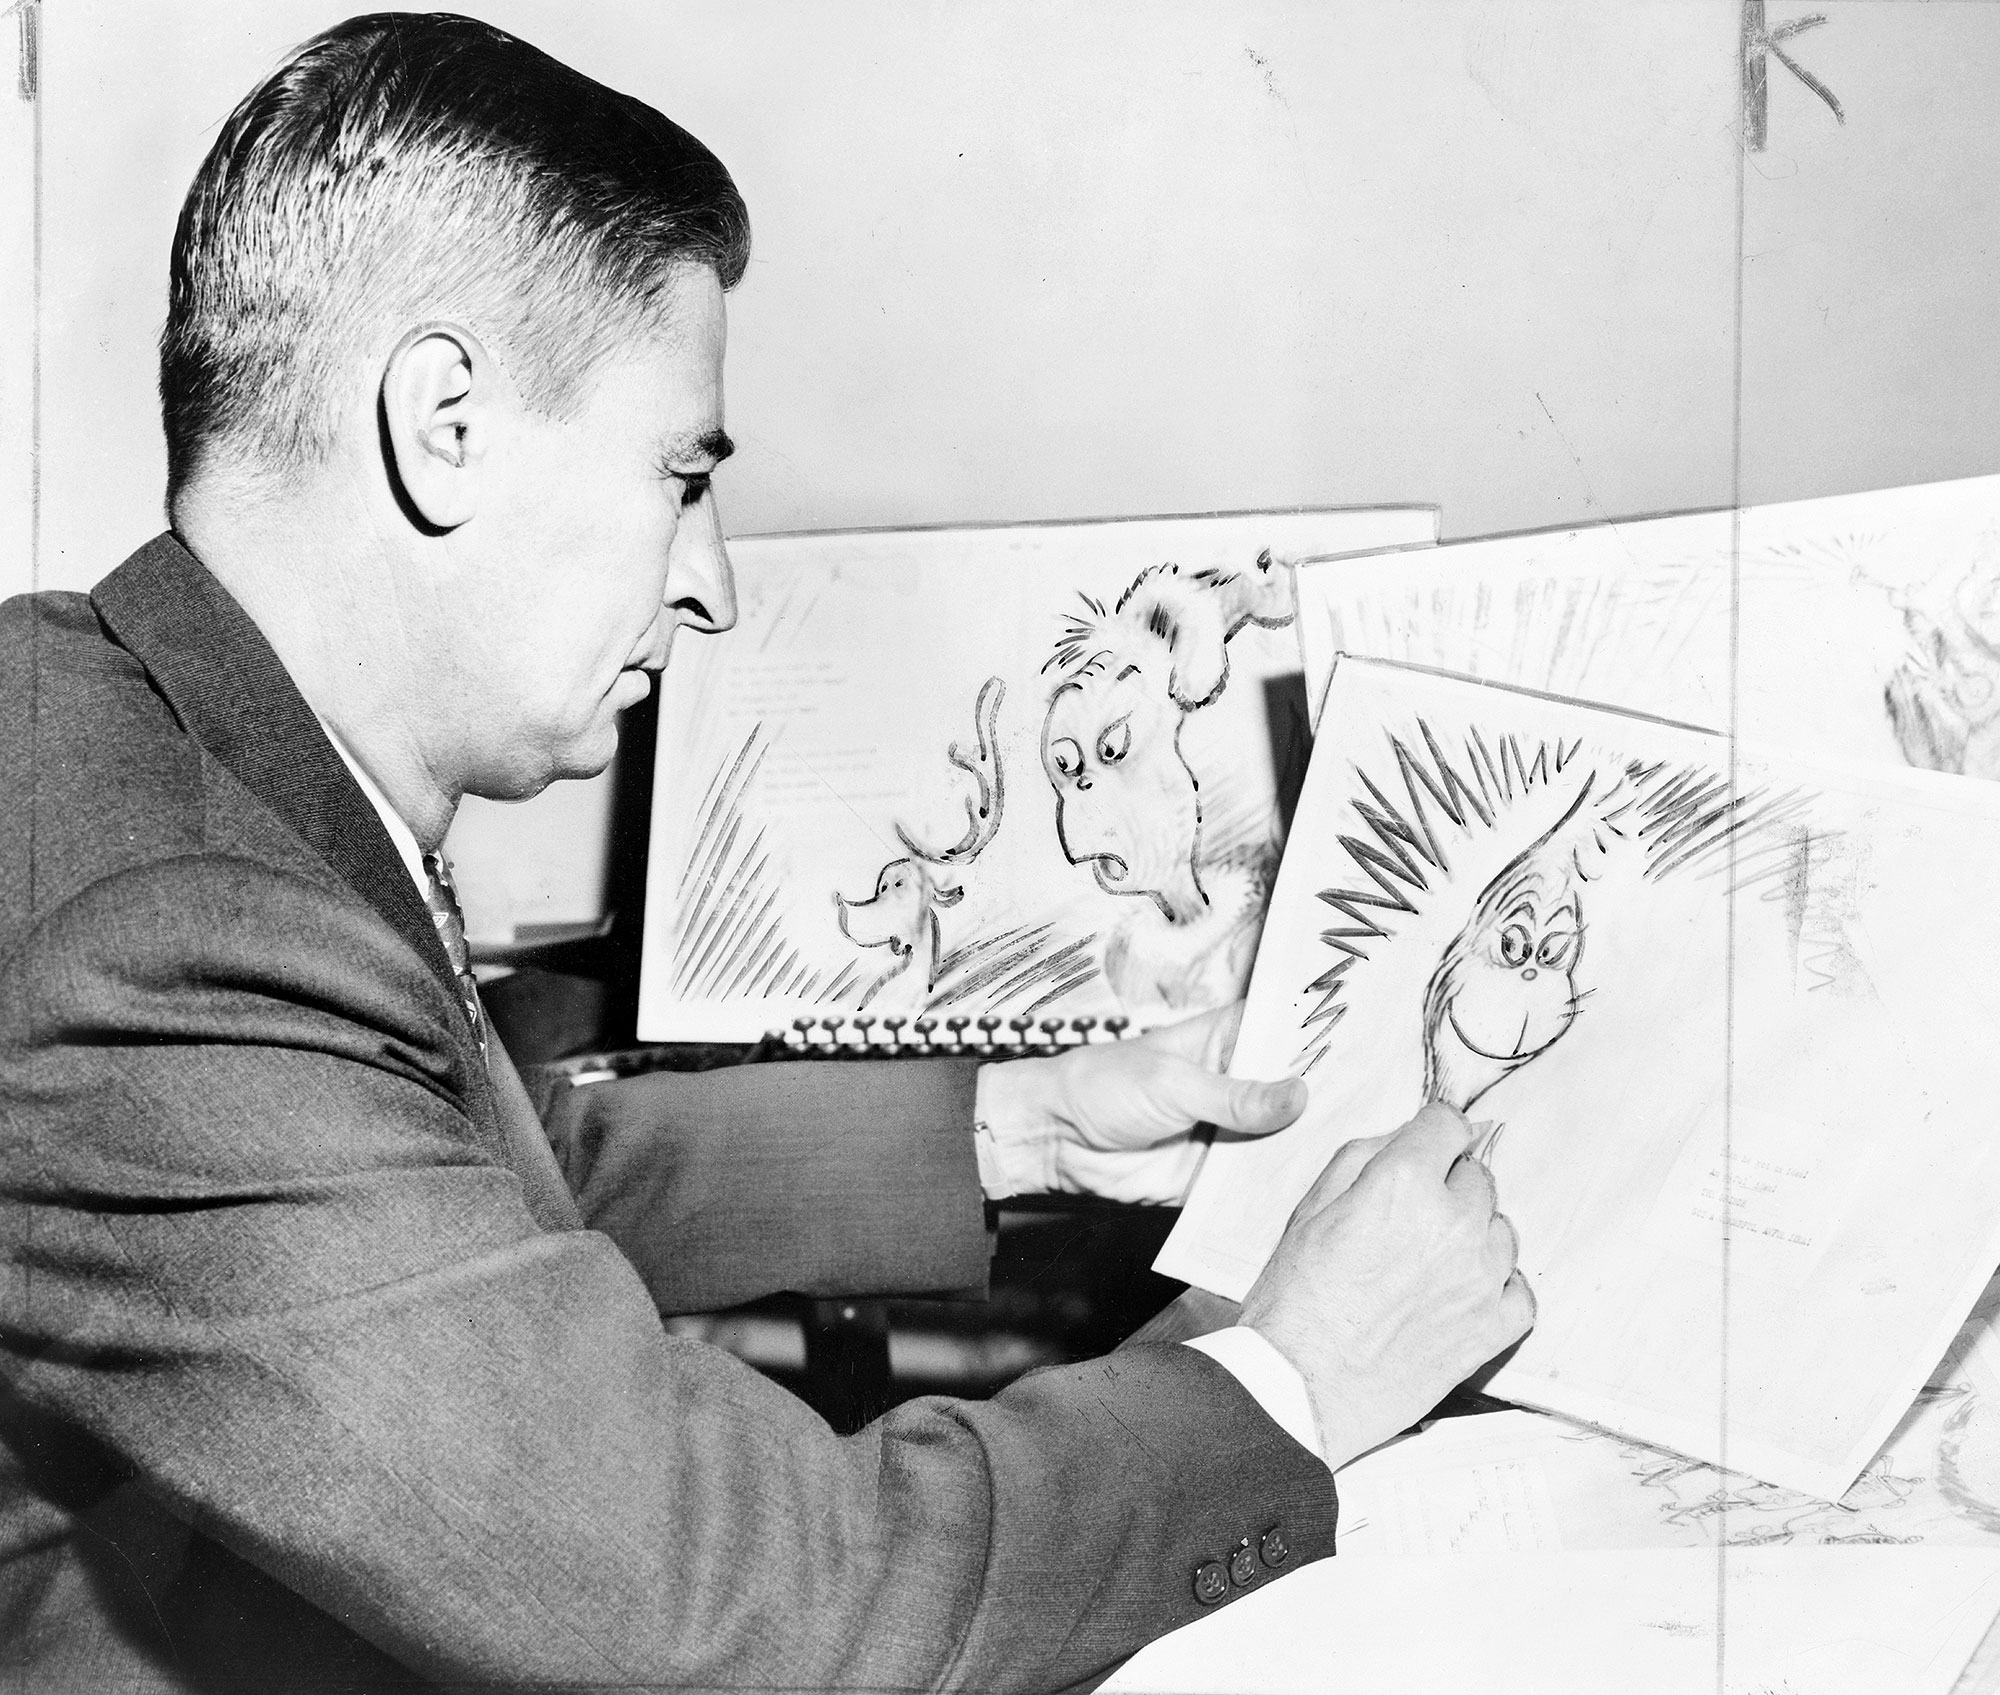 """Theodor Seuss Geisel 1904 ? 1991, American writer, poet, and cartoonist at work on a drawing of a grinch, the hero of his forthcoming book, """"How the Grinch Stole Christmas"""""""